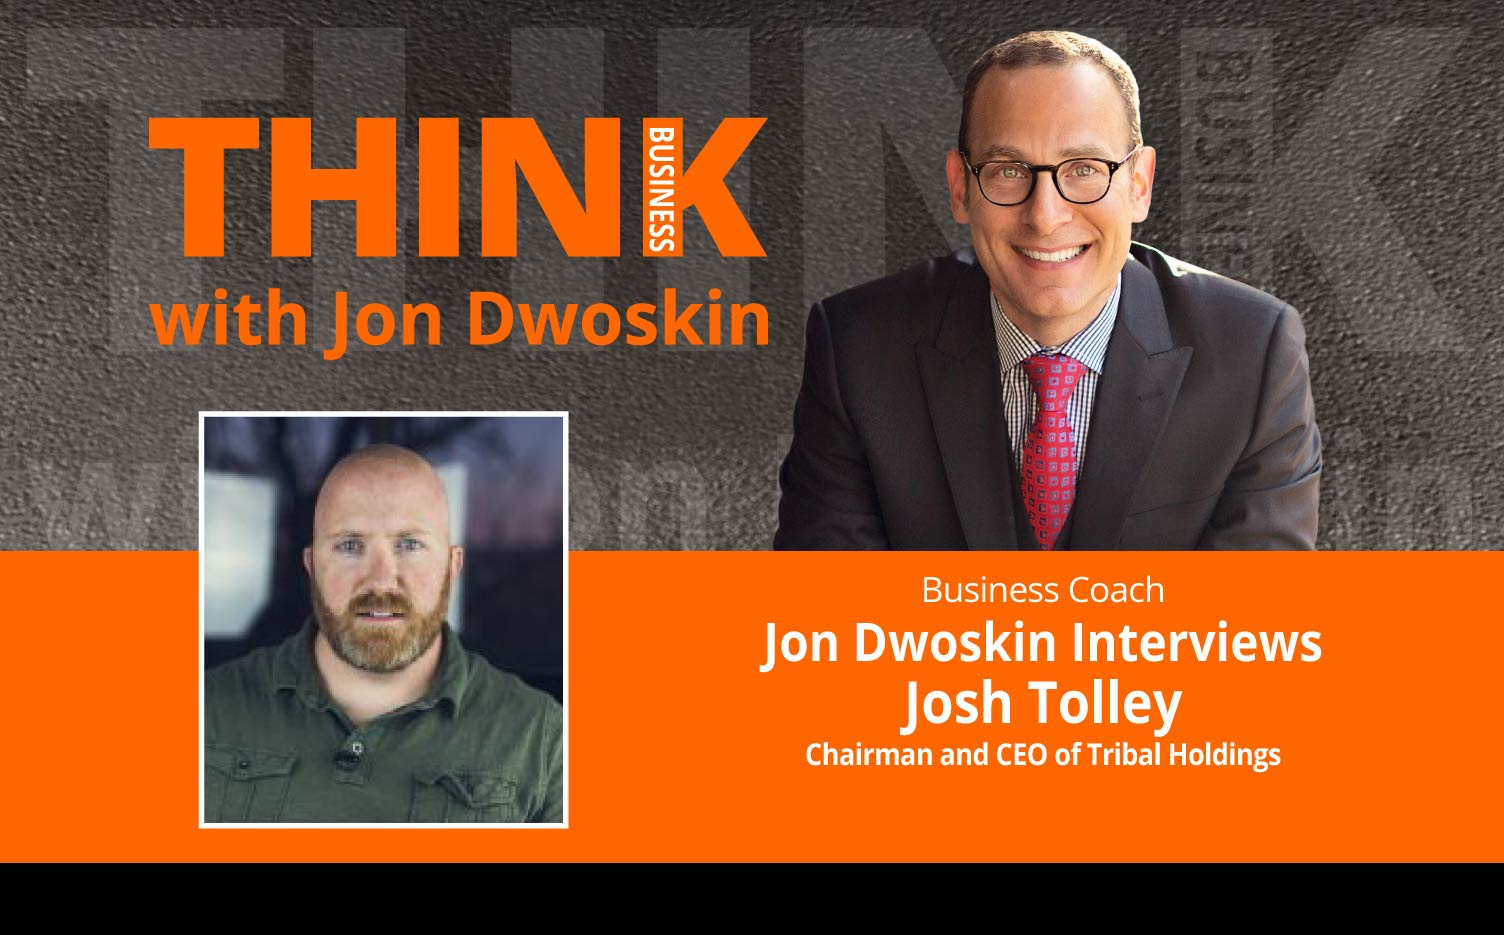 THINK Business Podcast: Jon Dwoskin Interviews Josh Tolley, Chairman and CEO of Tribal Holdings